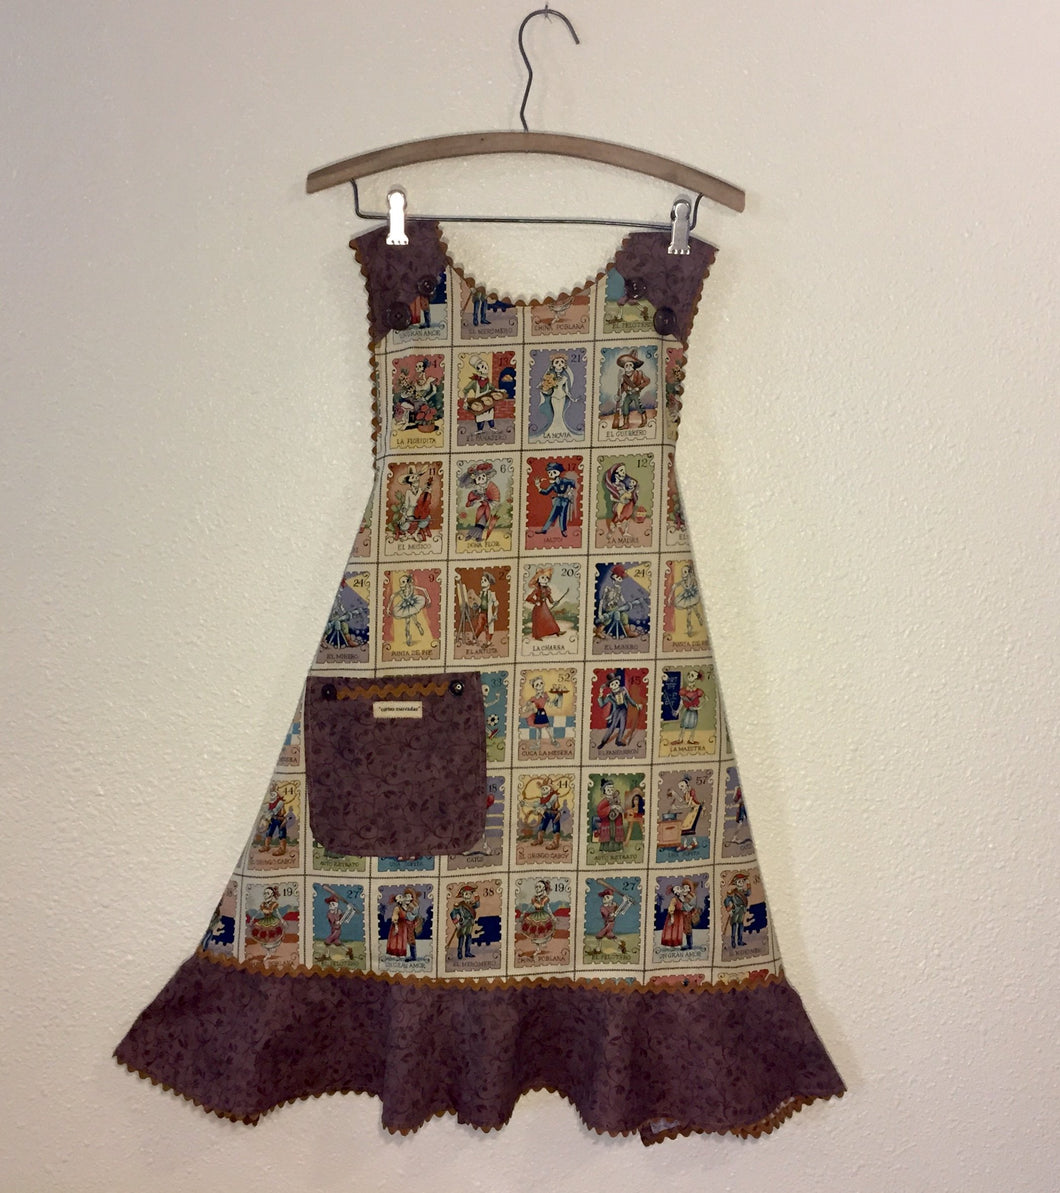 Image of apron with fabric printed with Mexican lotteria cards